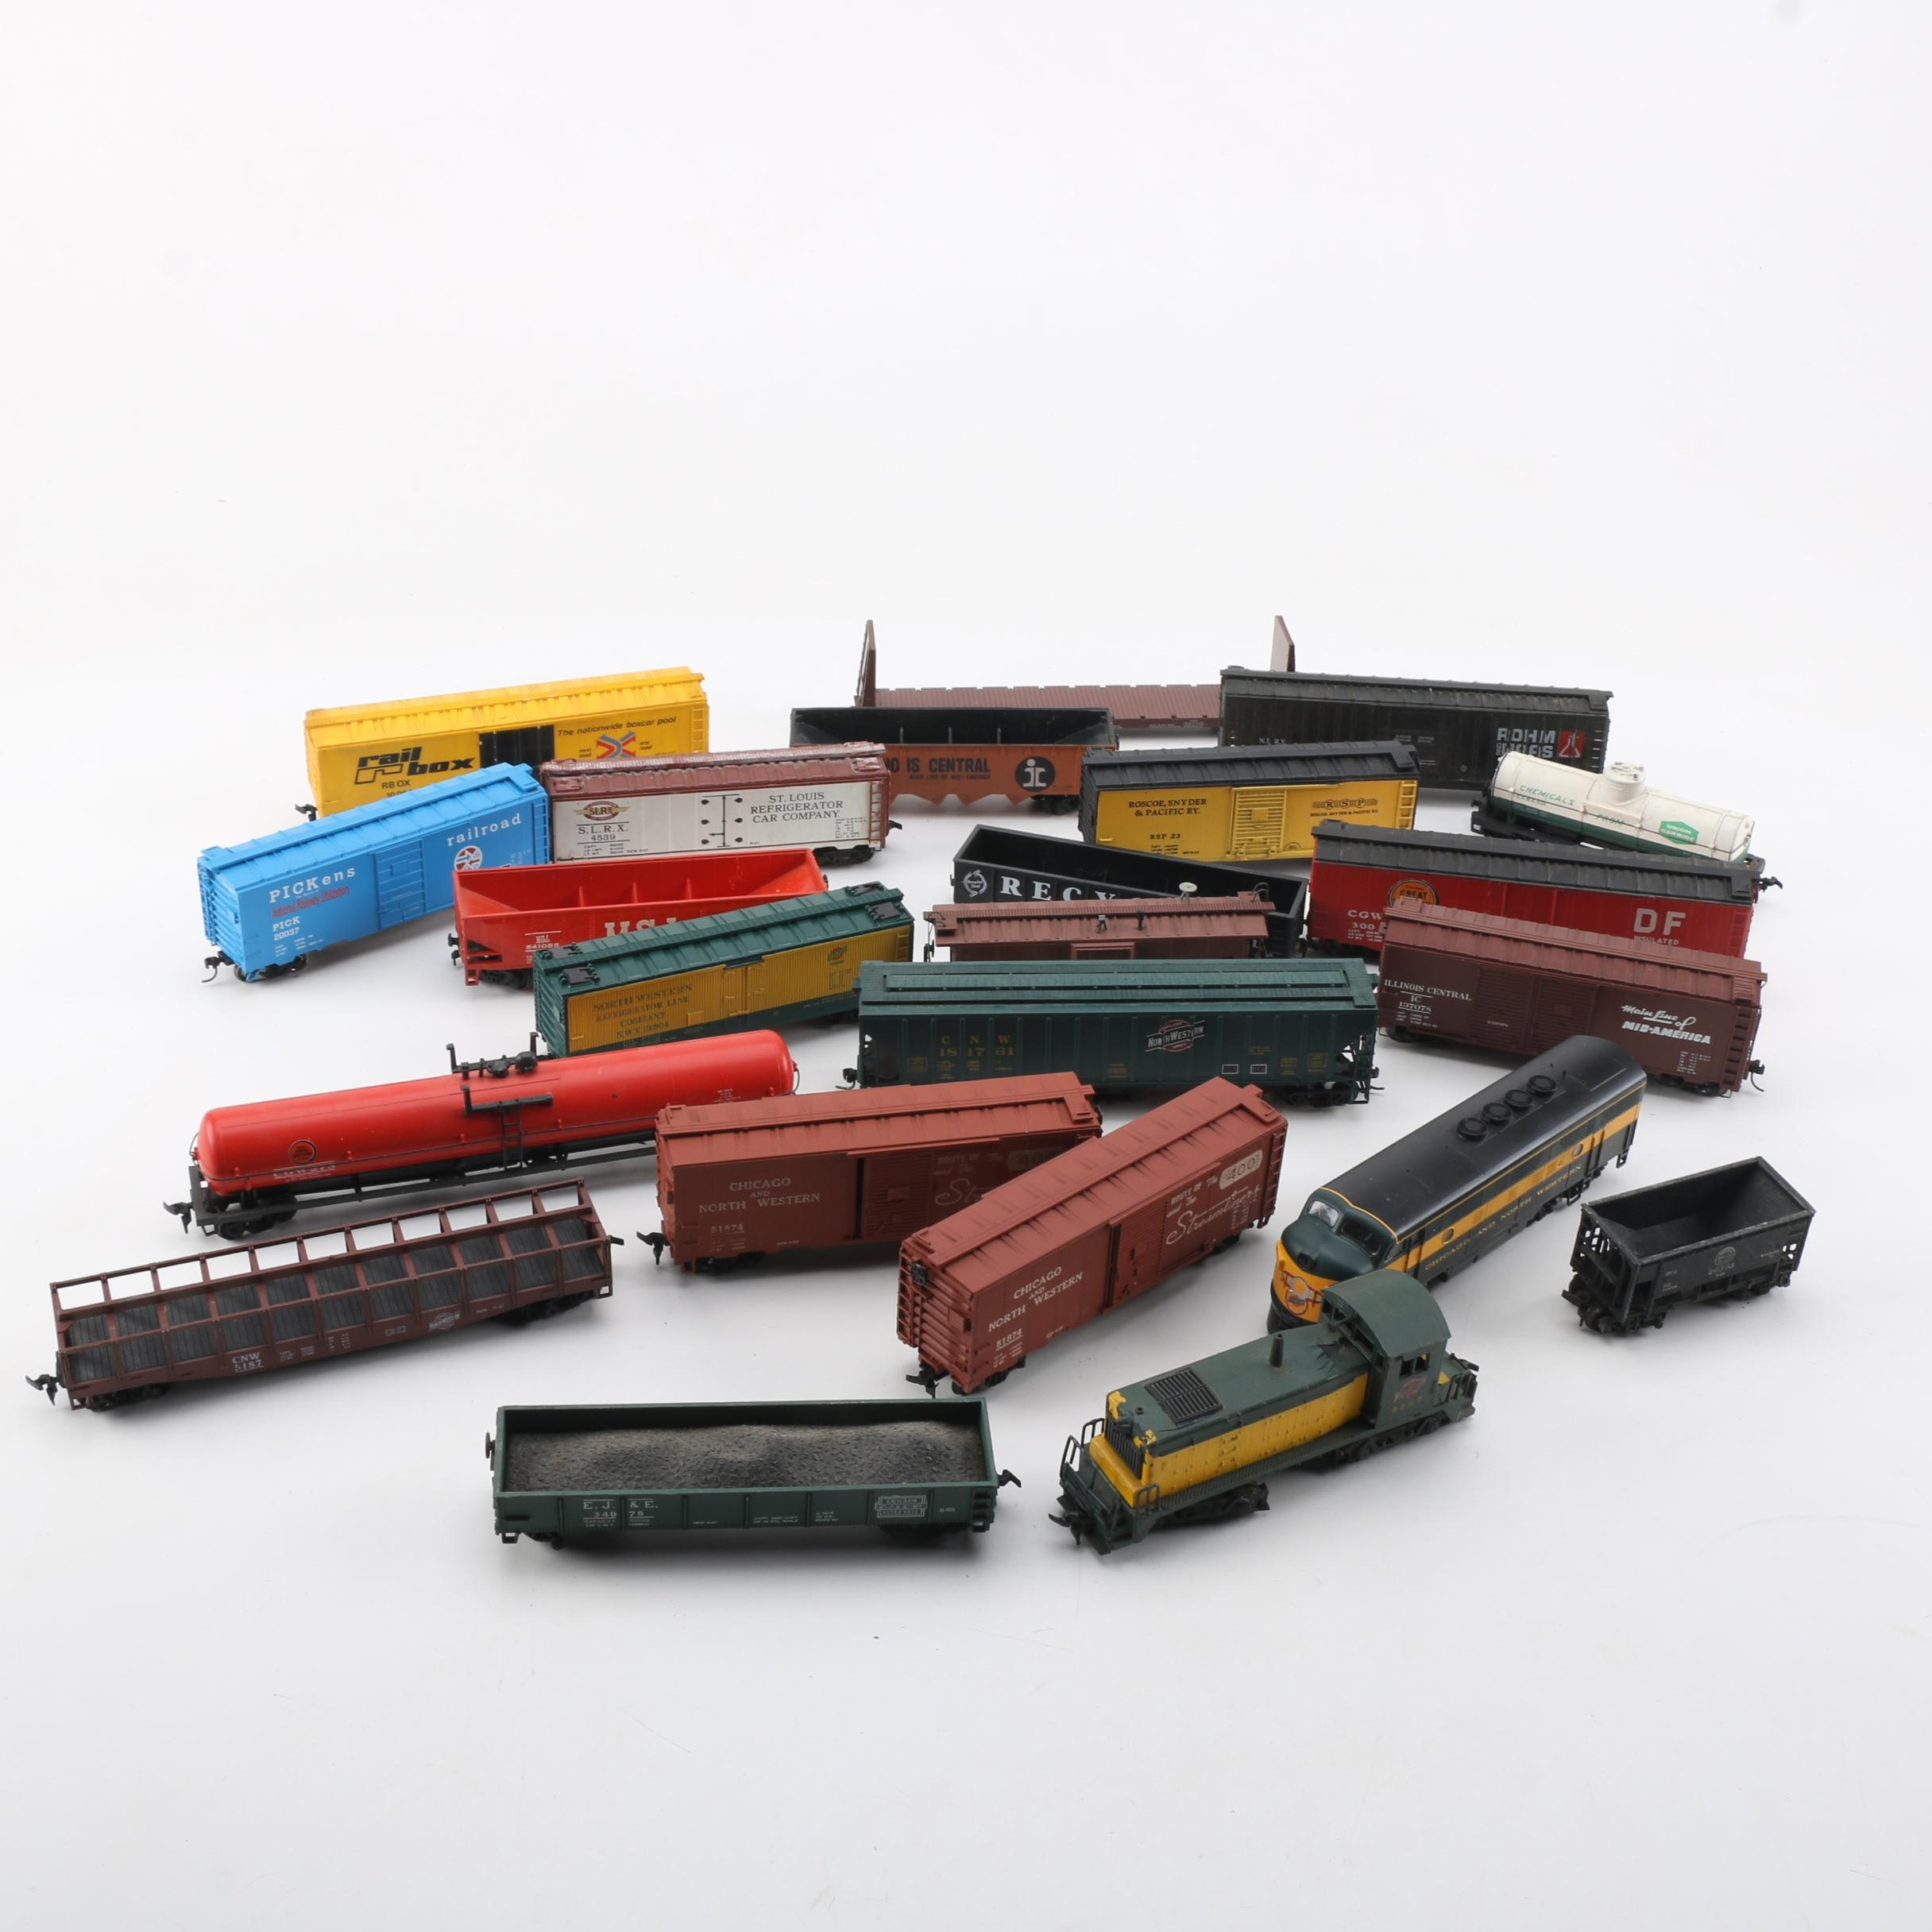 Collection of HO Scale Trains